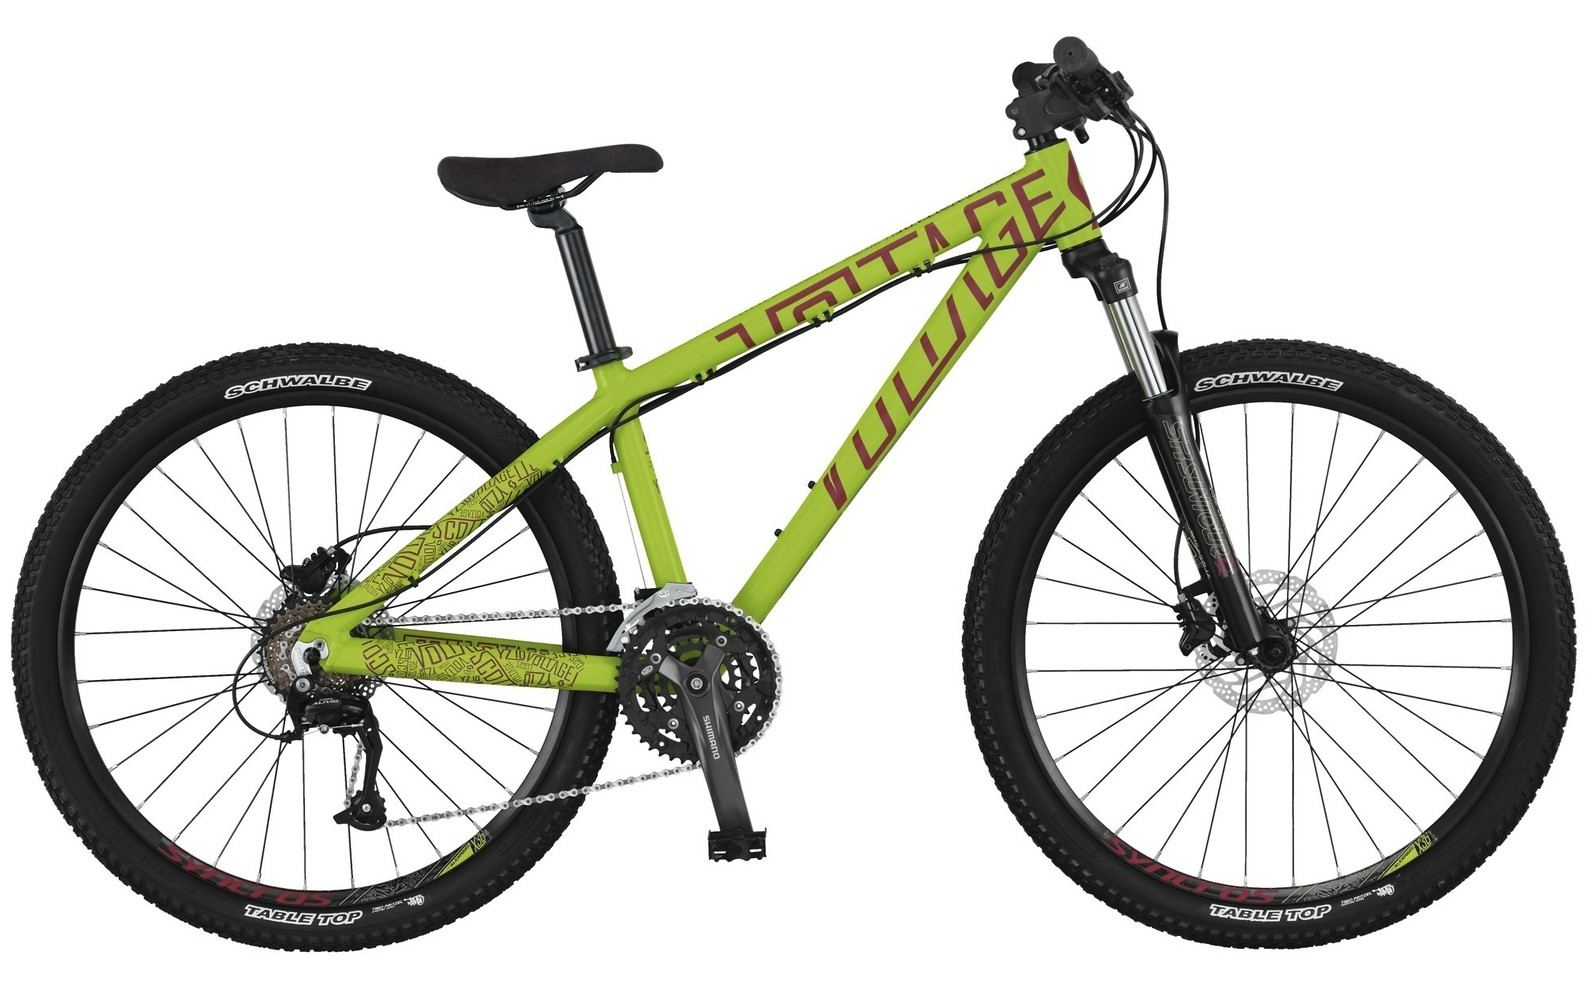 2014 Scott Voltage YZ 10 Bike SCOTT Voltage YZ 10 Bike